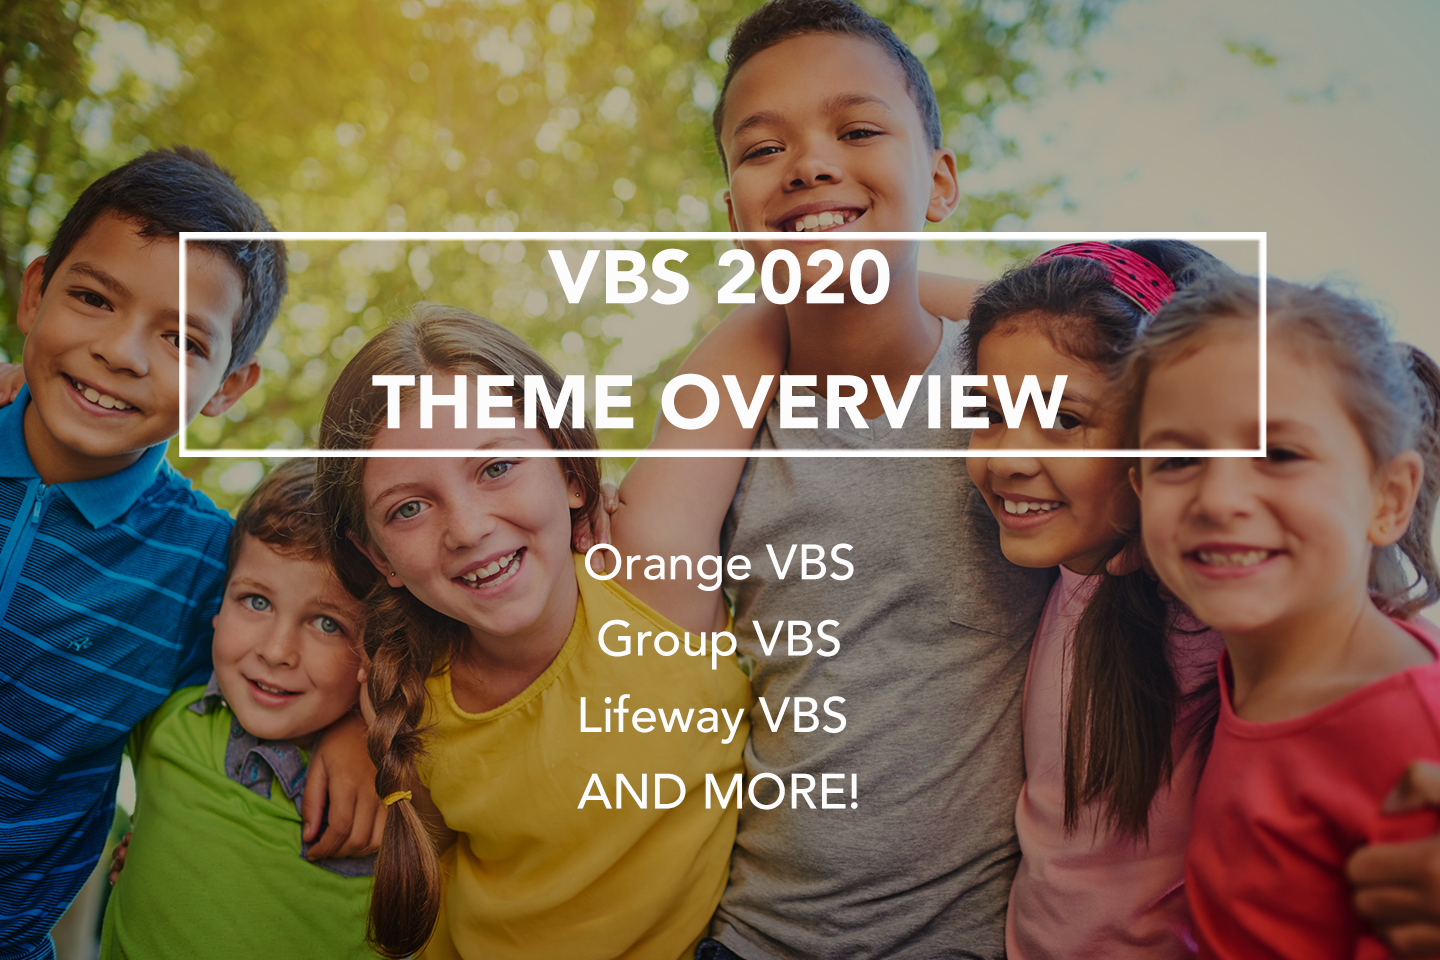 VBS 2020 Theme Overviews - Orange VBS, Lifeway VBS, Group VBS